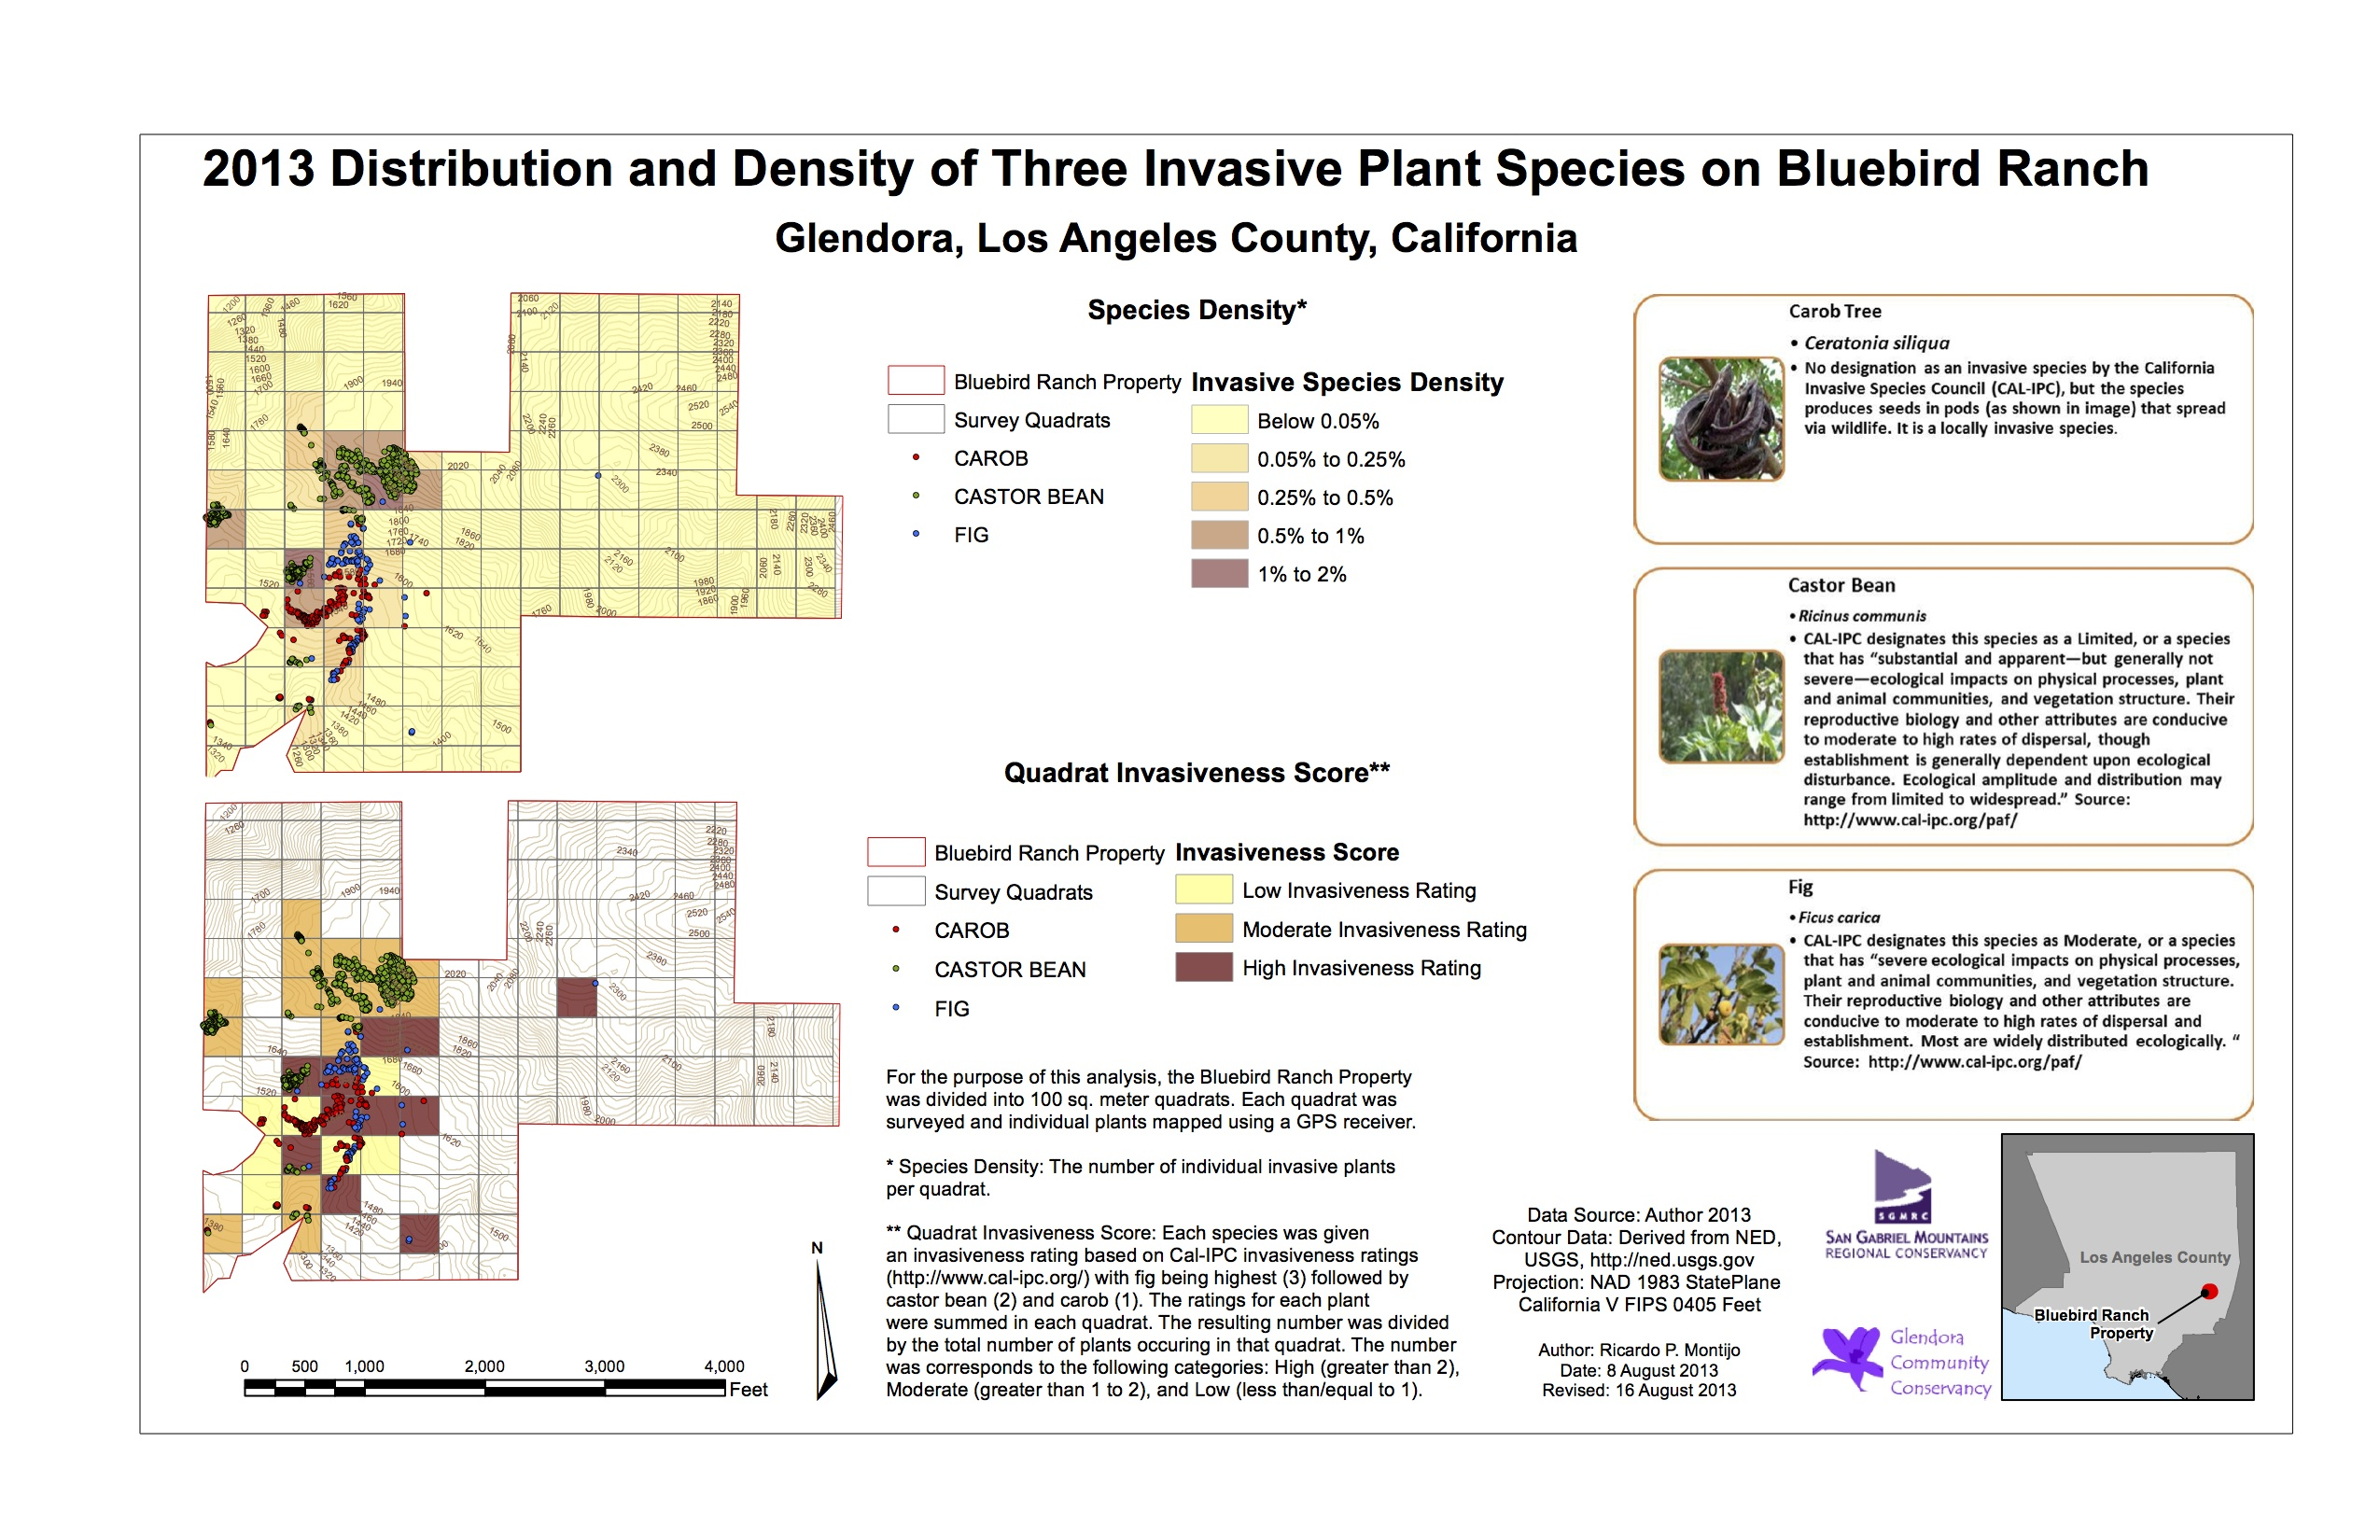 Ricardo Montijo: Distribution and Density of Three Invasive Plant Species on Bluebird Ranch